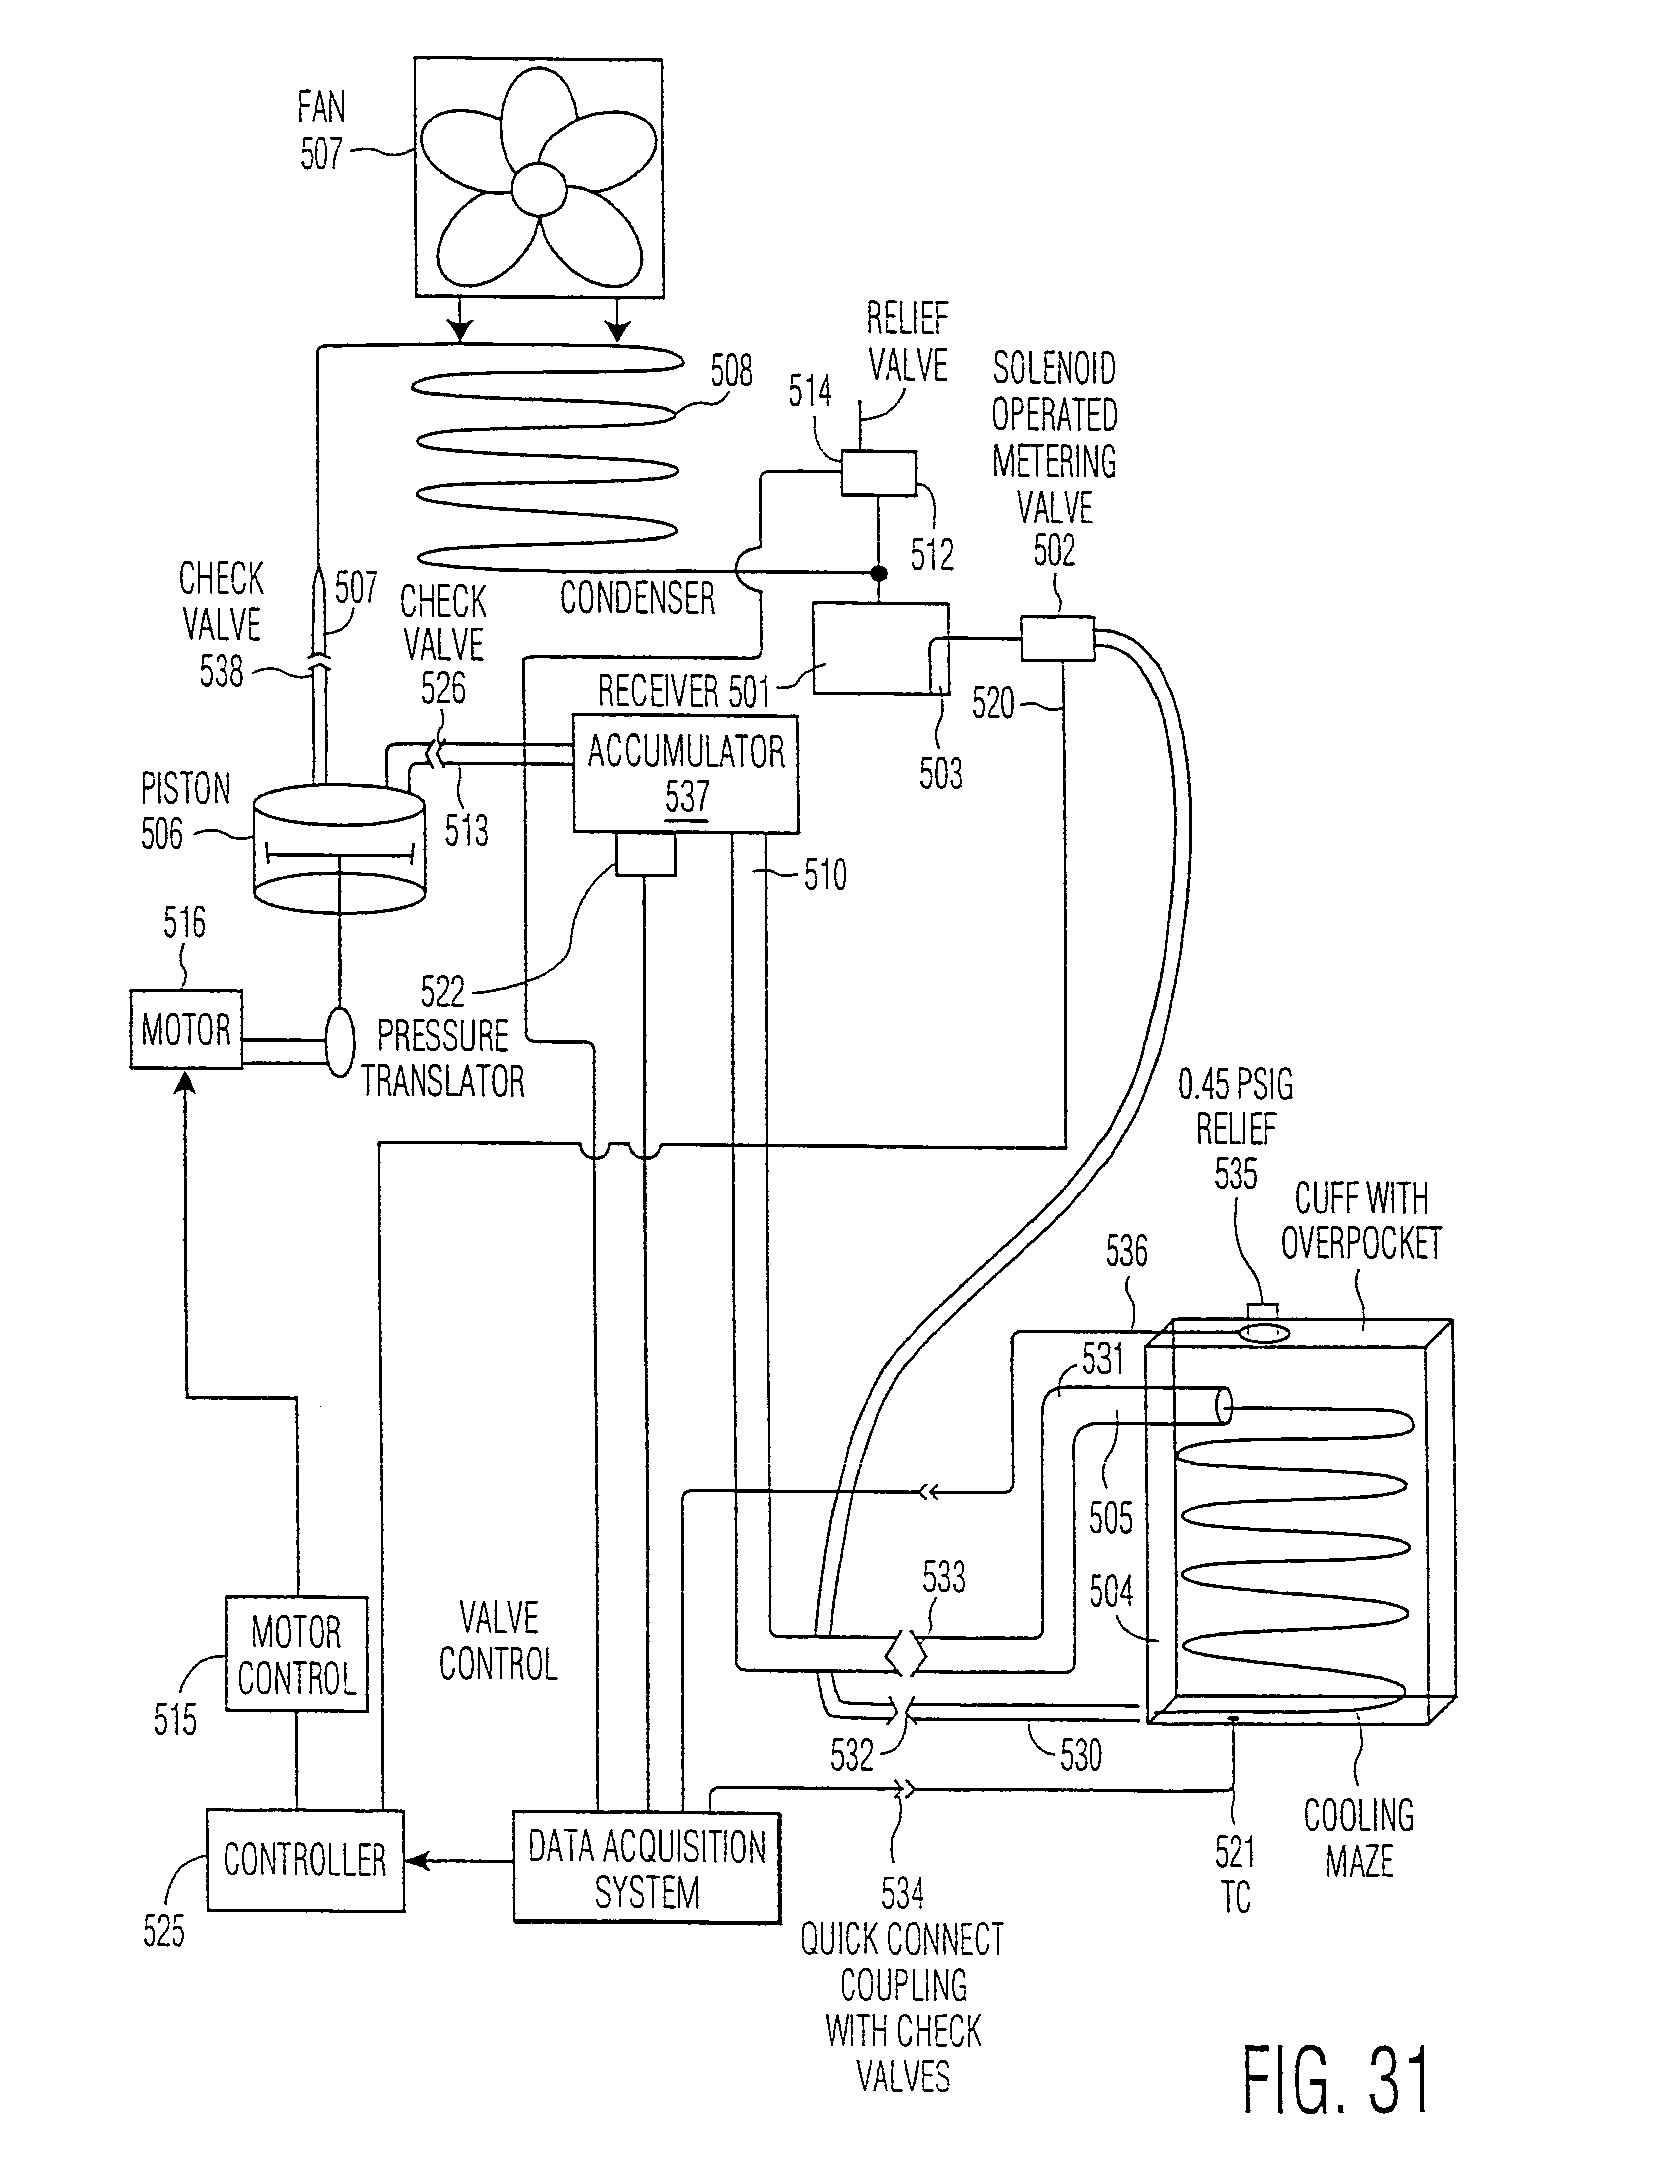 2910 Ford Tractor Wiring Diagram External Regulator Electrical Alternator Yanmar Diesel Database Kubota